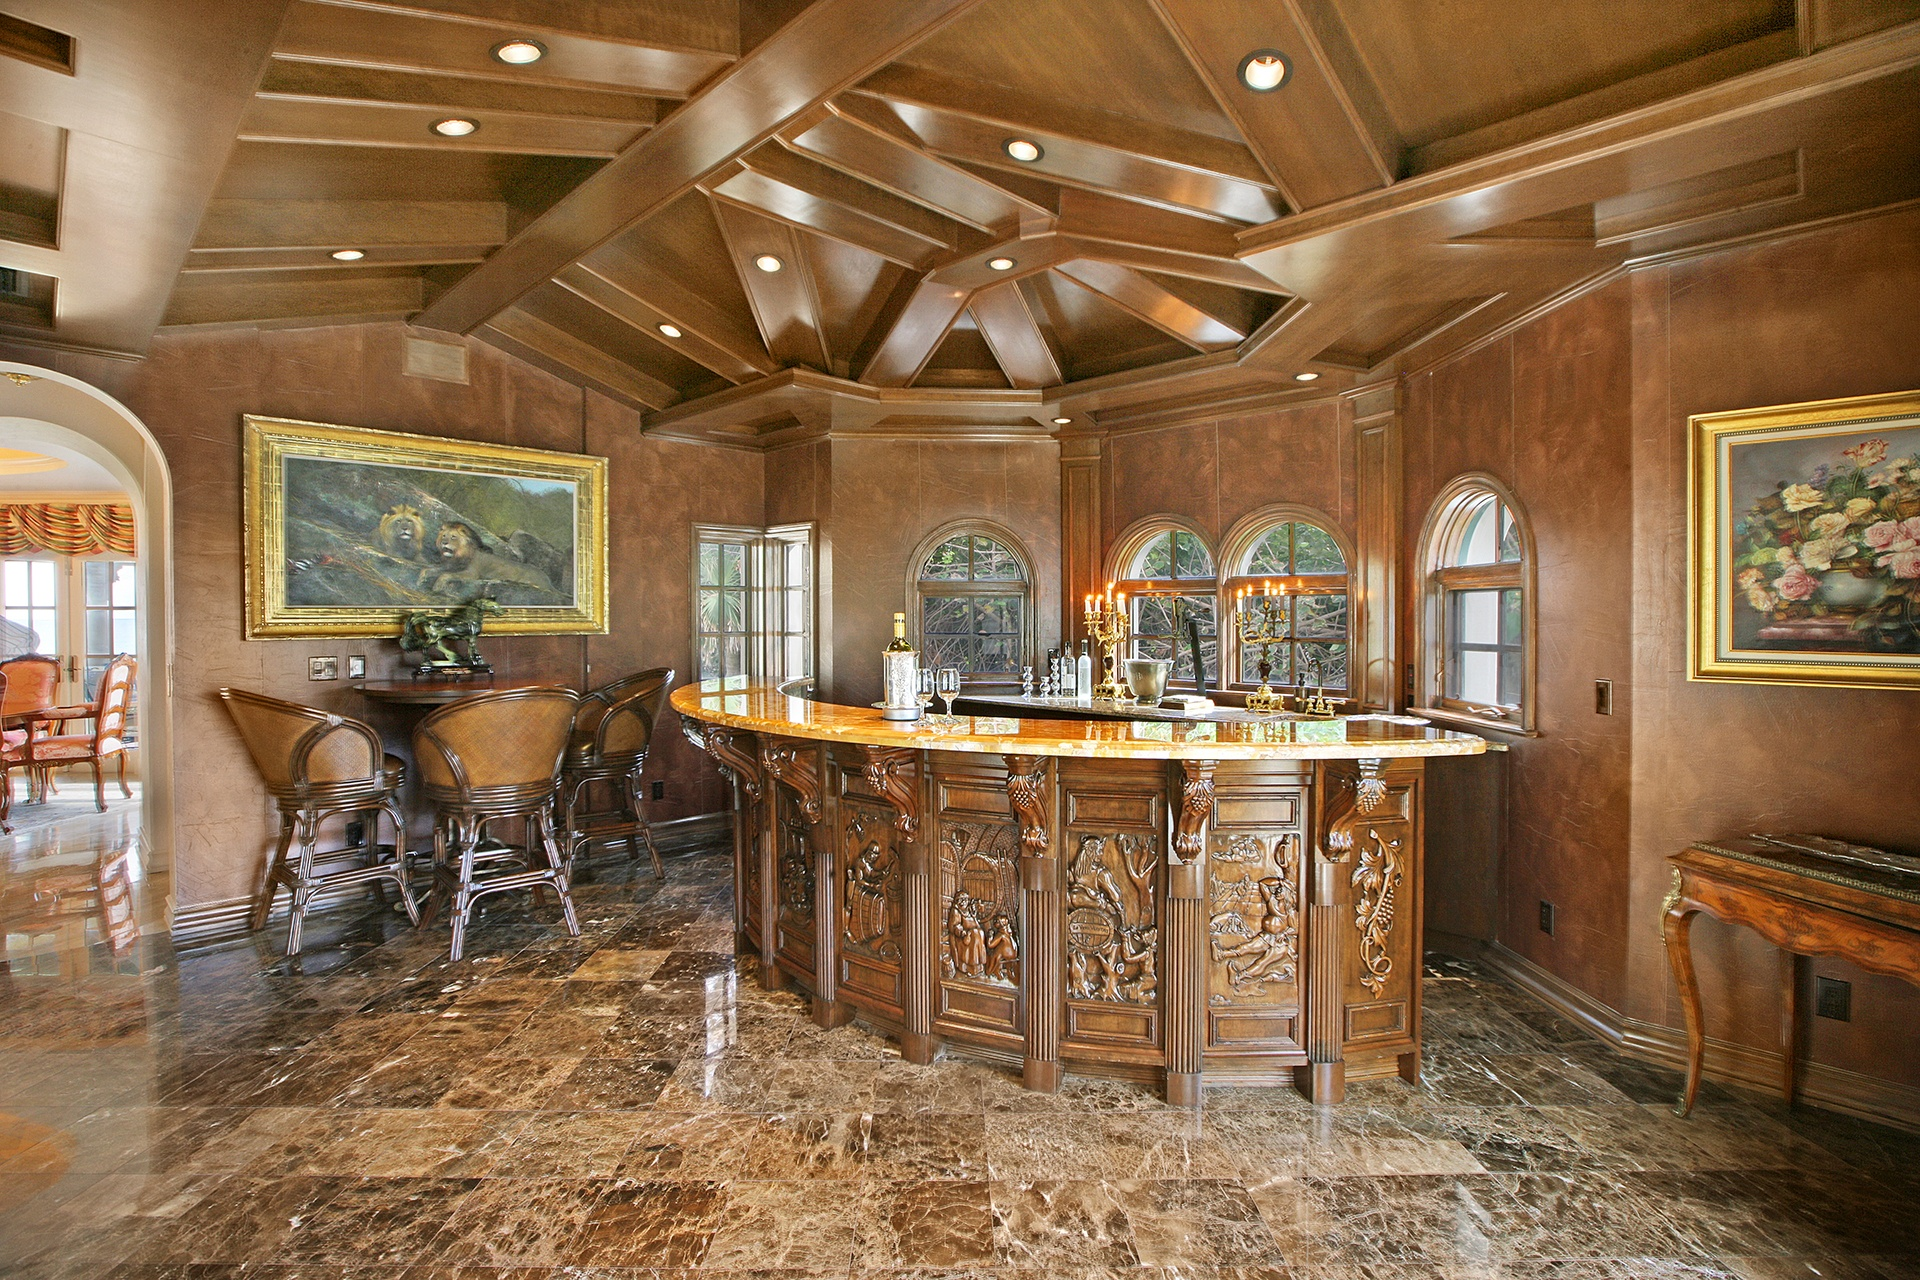 A fully equipped wet bar with views of the Atlantic Ocean and the moonscapes for which it was named is just one of the luxurious features of this Mizner-esque mansion on the sands of Jupiter Island, Florida.